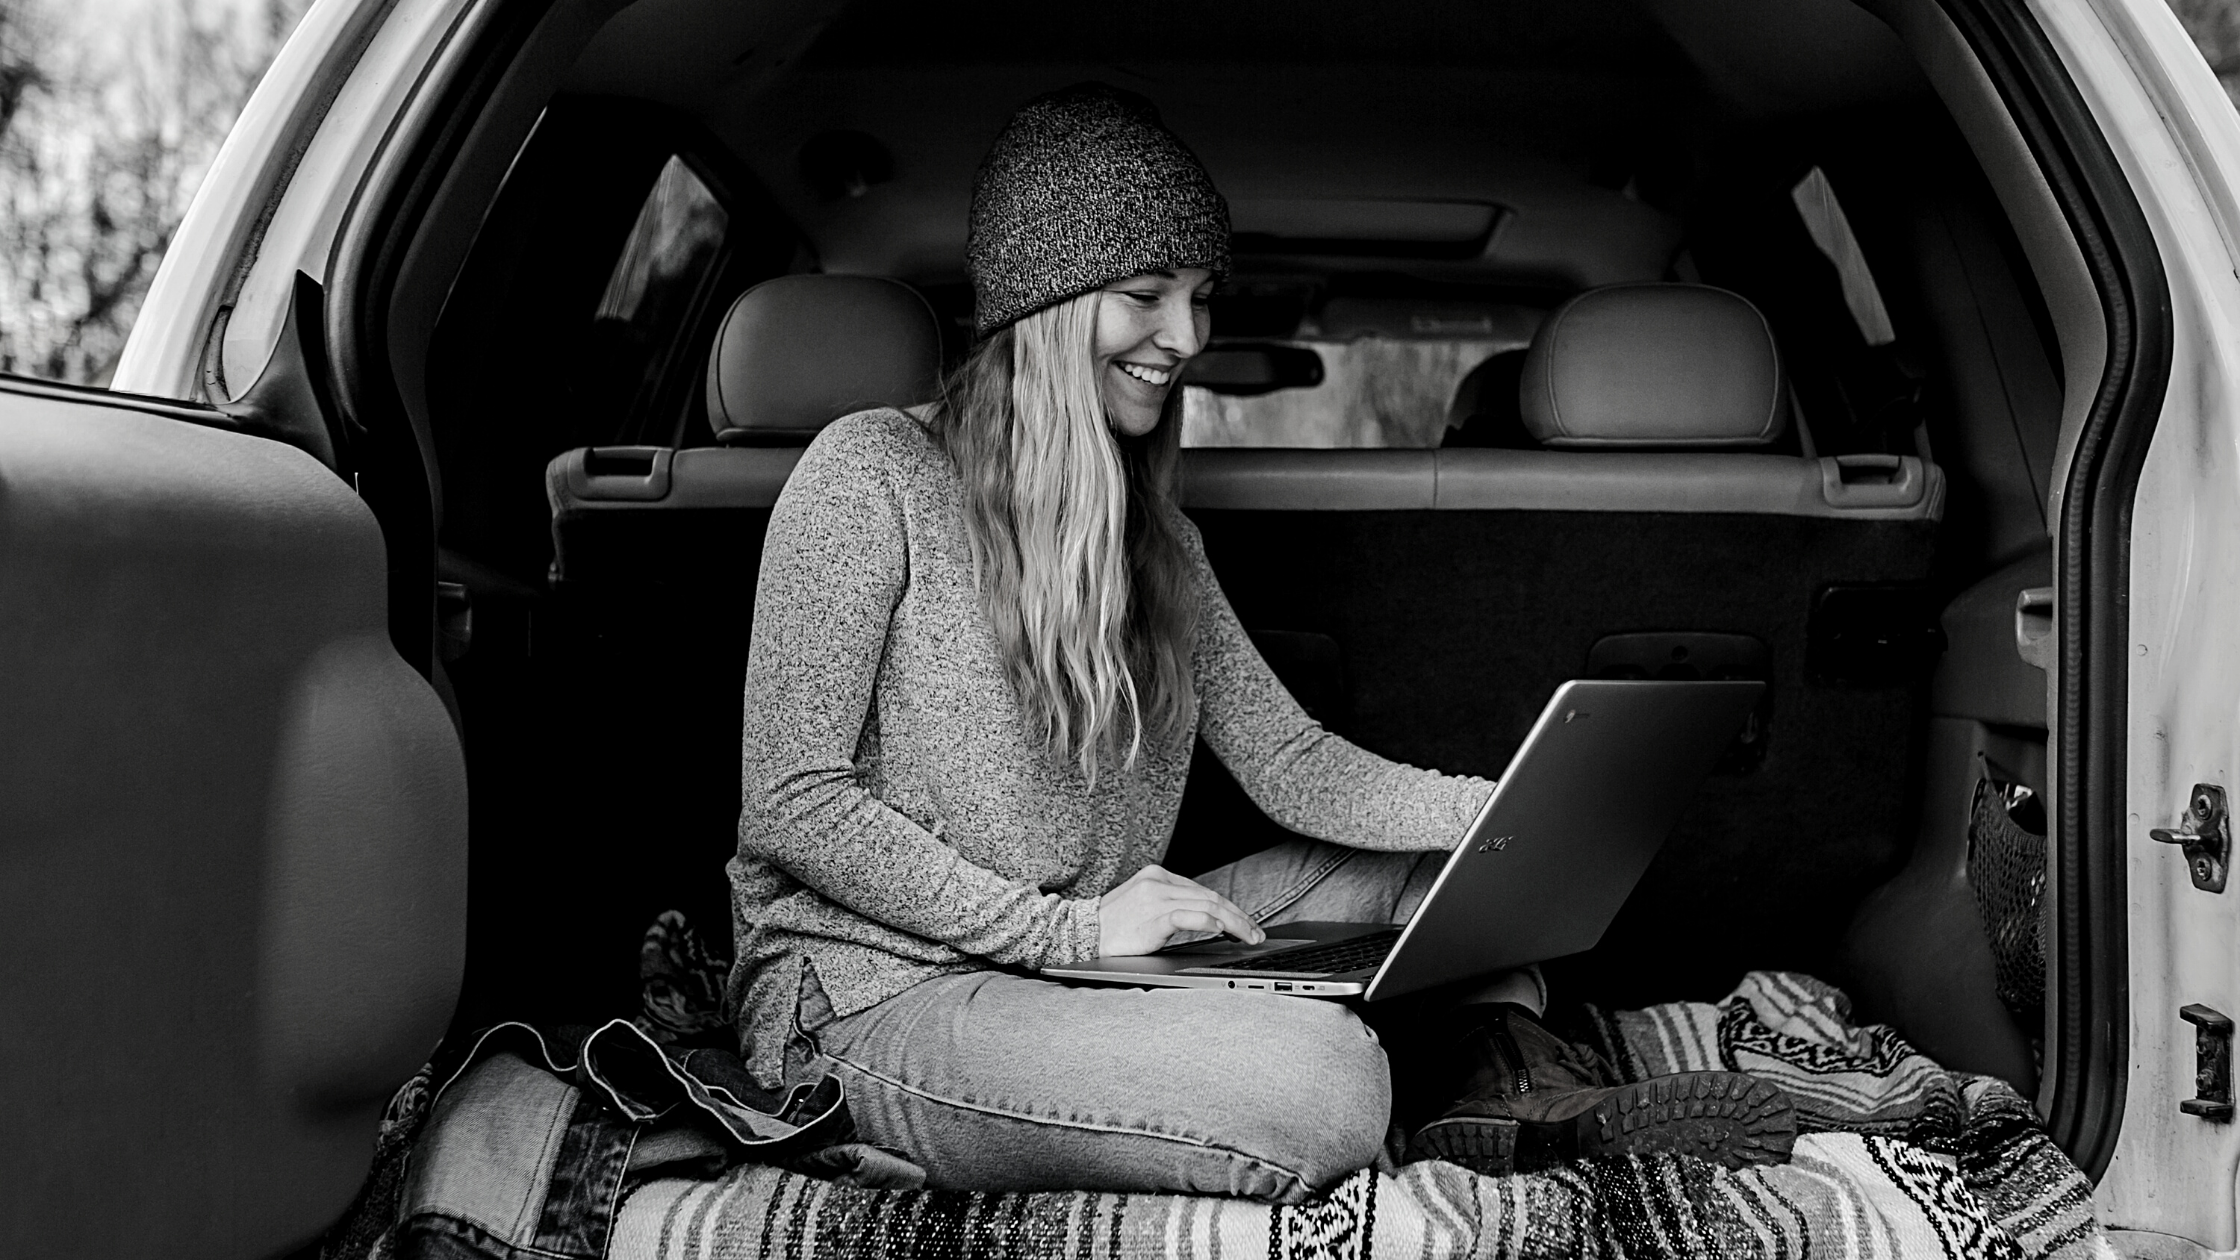 woman sitting in back of vehicle looking at laptop